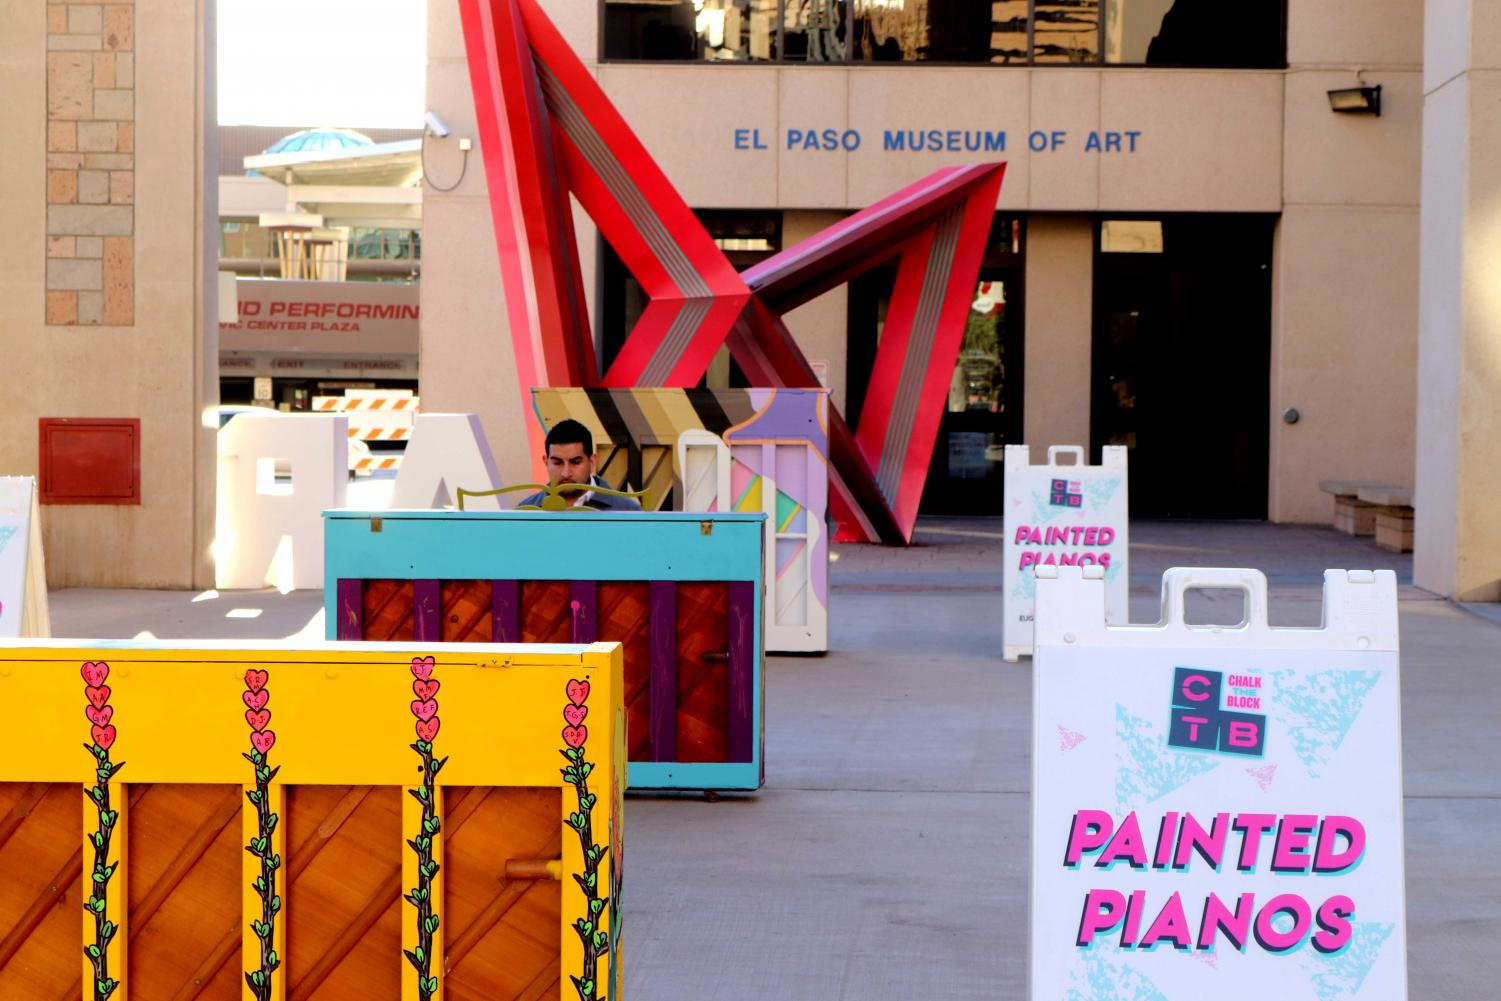 Local artist showcase their painted pianos at 2019 Chalk The Block, El Paso.